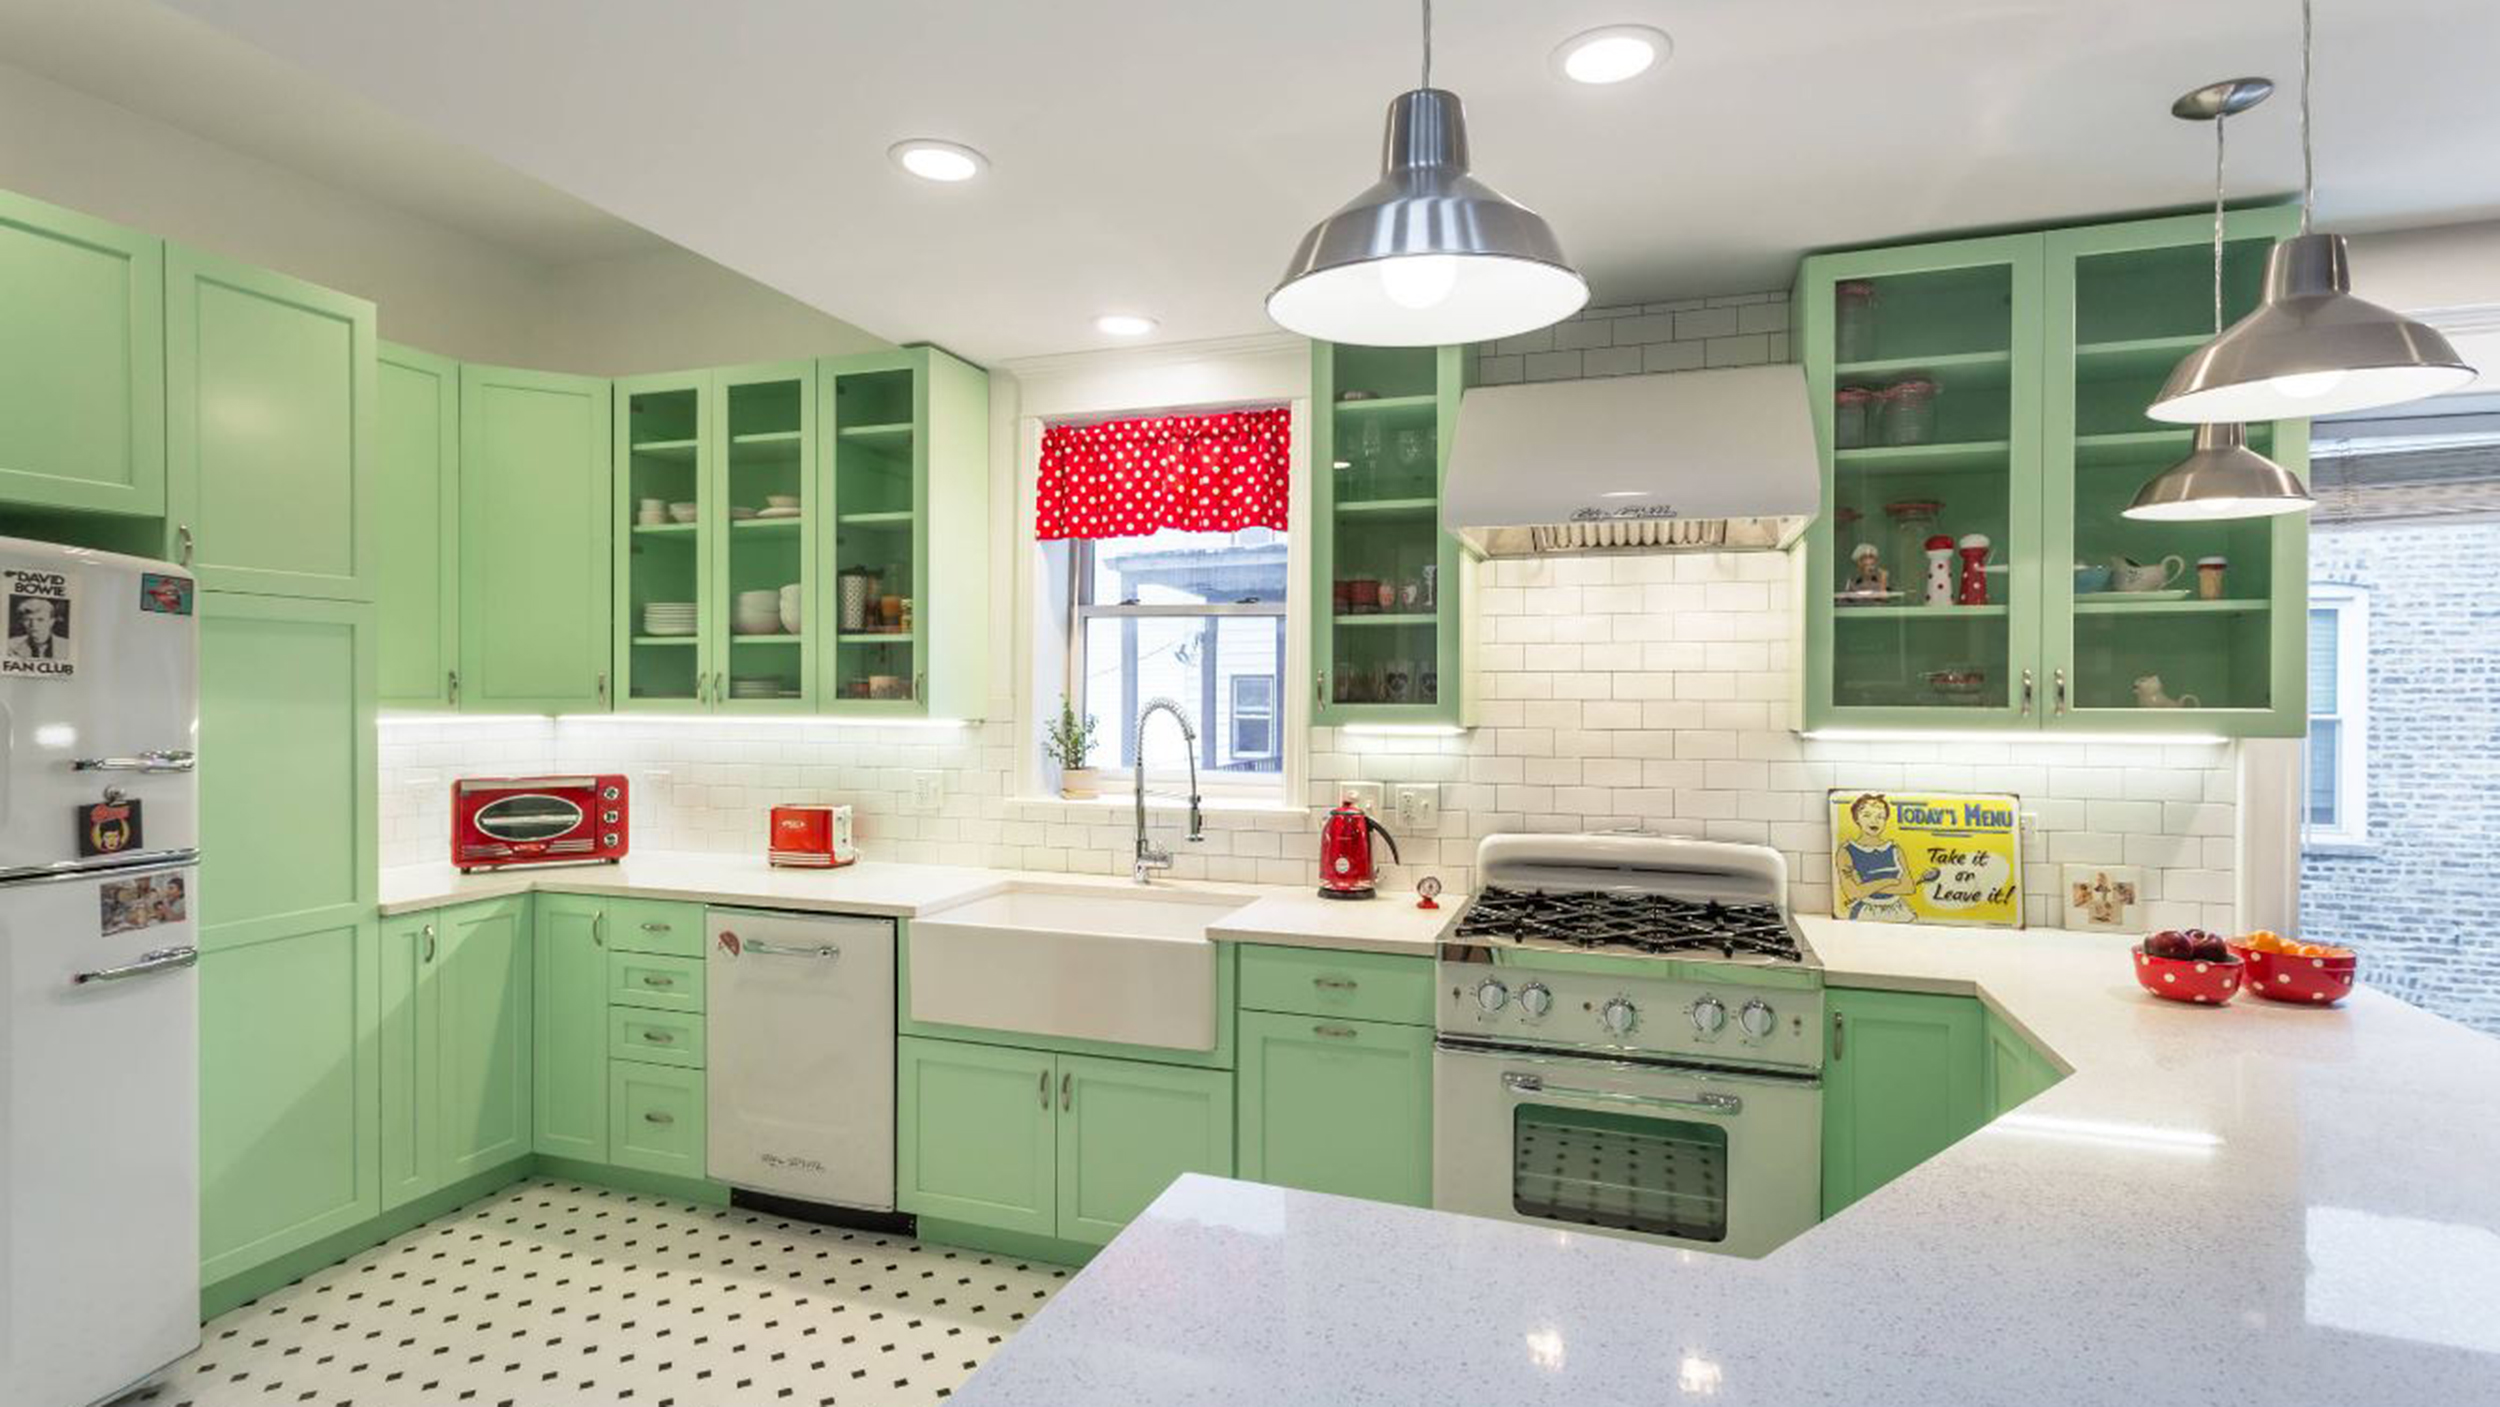 Kitchen 50s makeover Before and after  TODAYcom